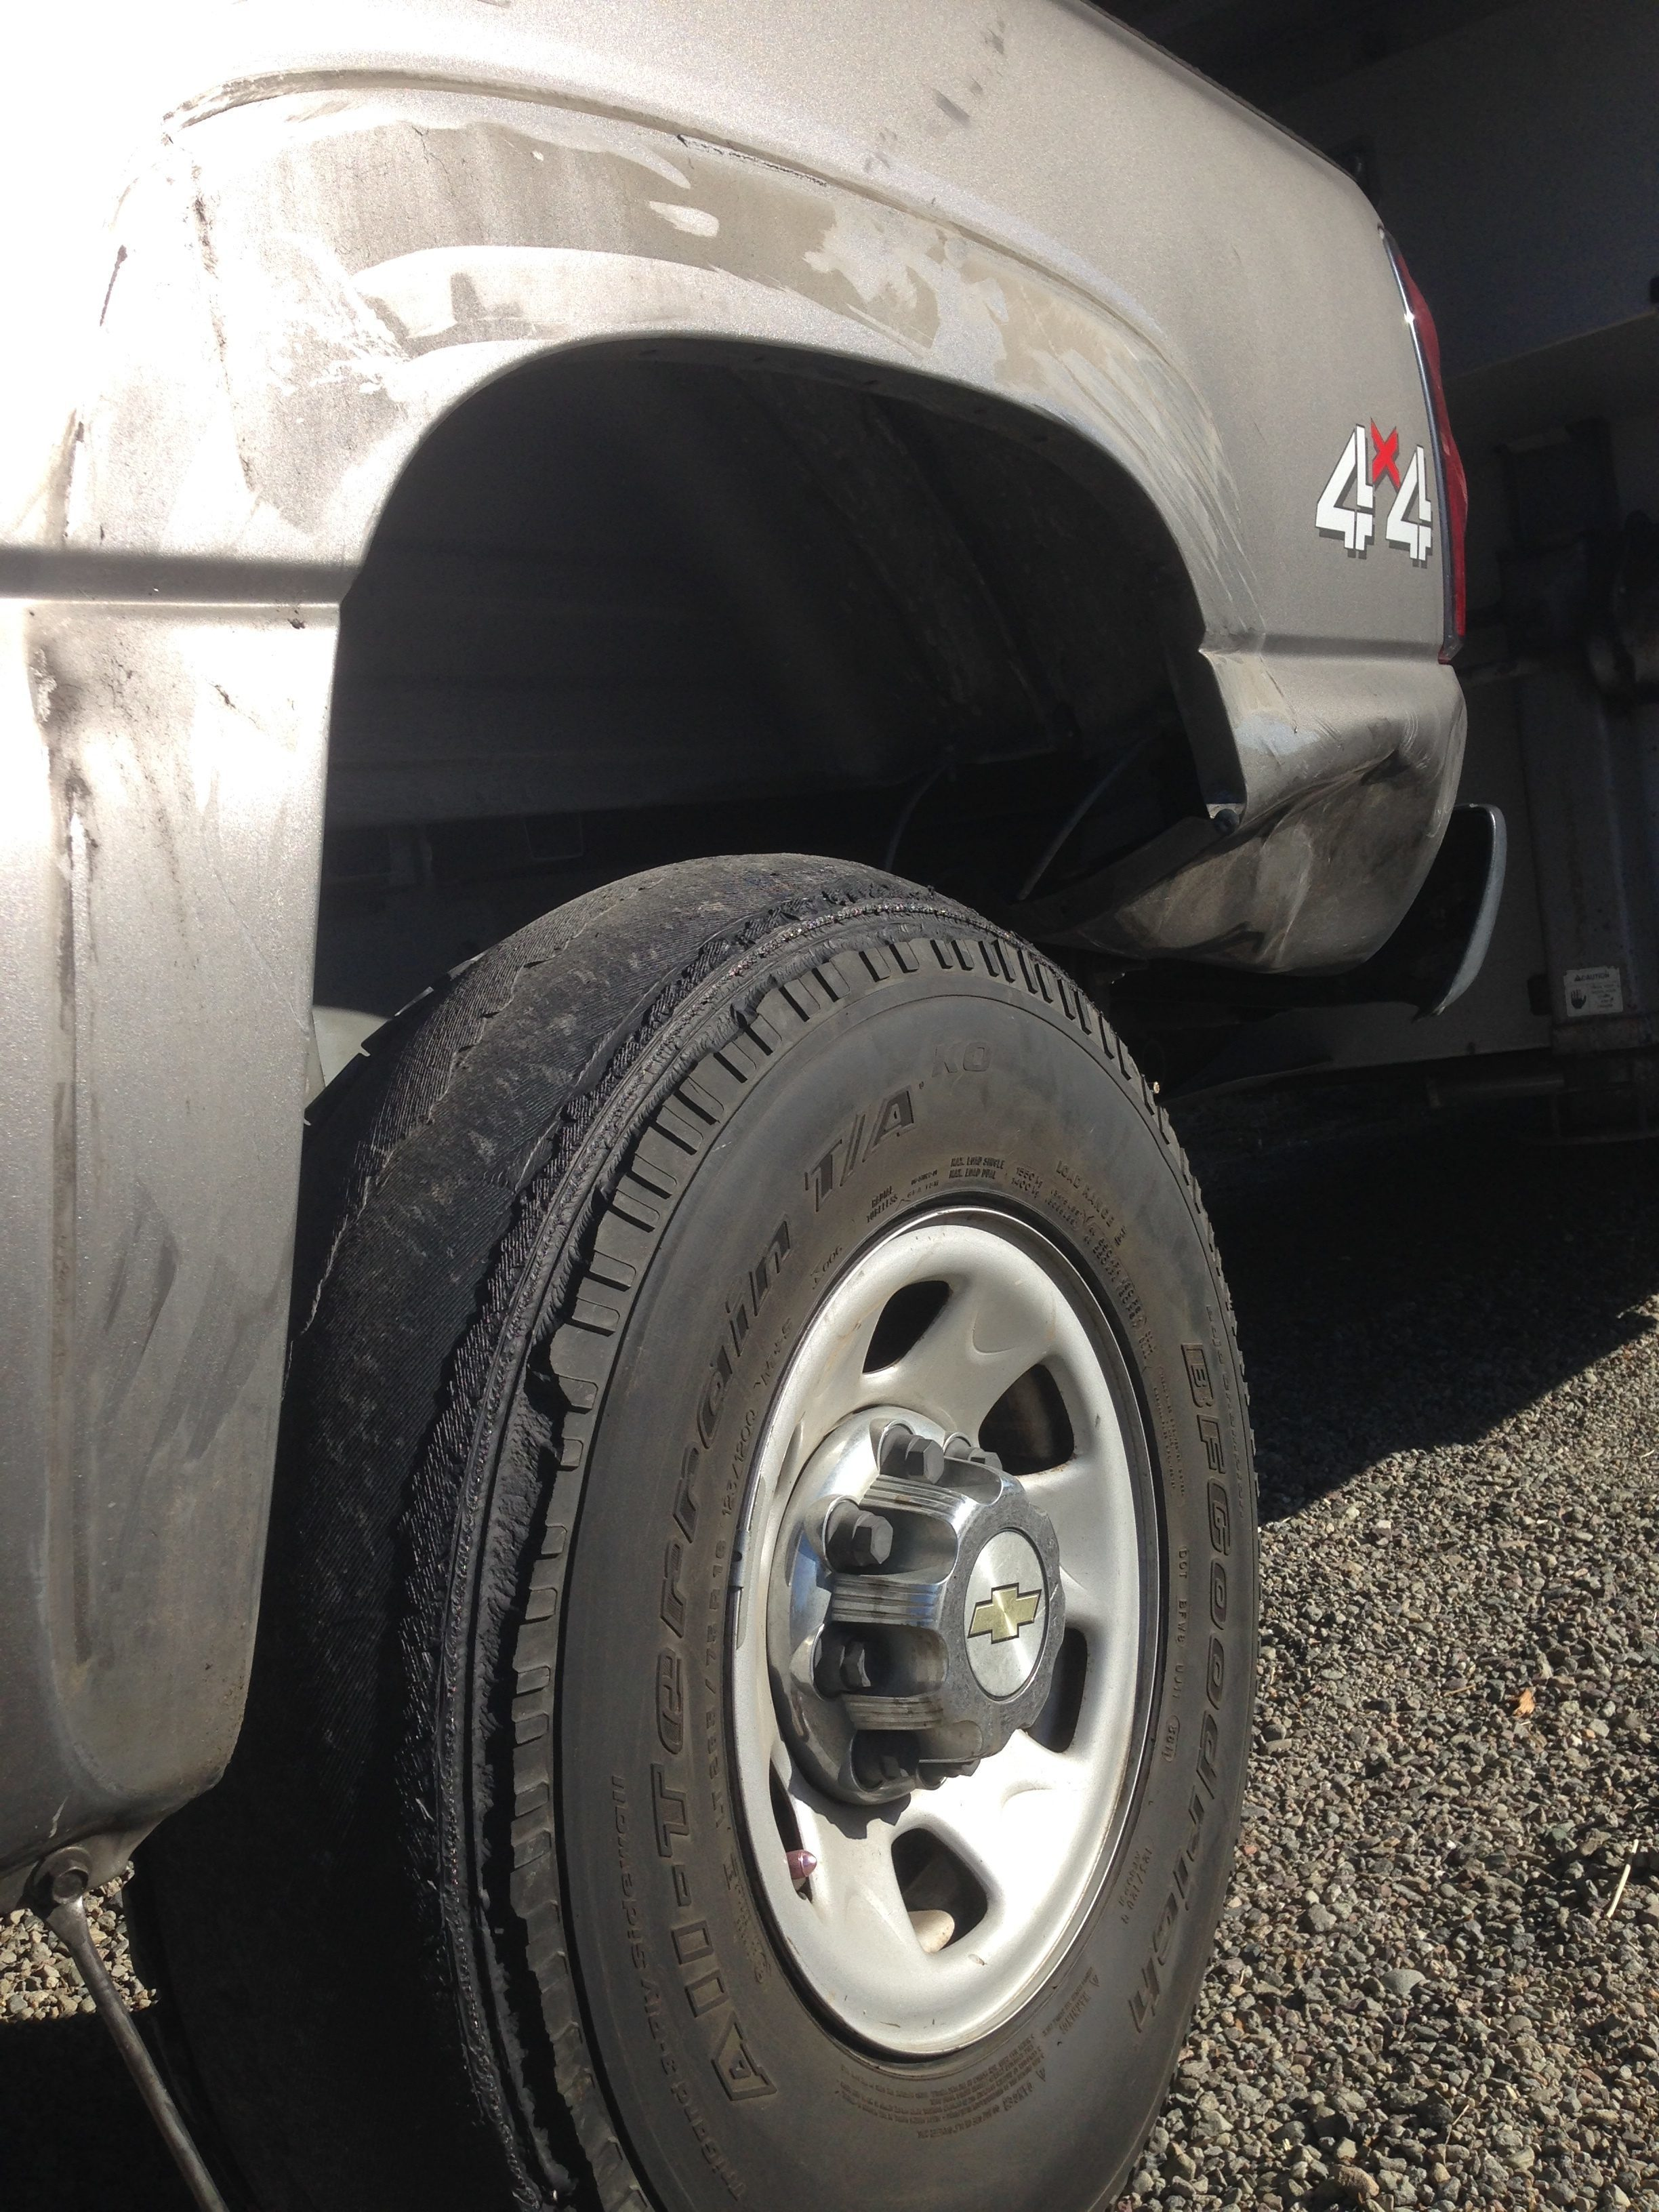 Top 153 Complaints And Reviews About B F Goodrich Tires